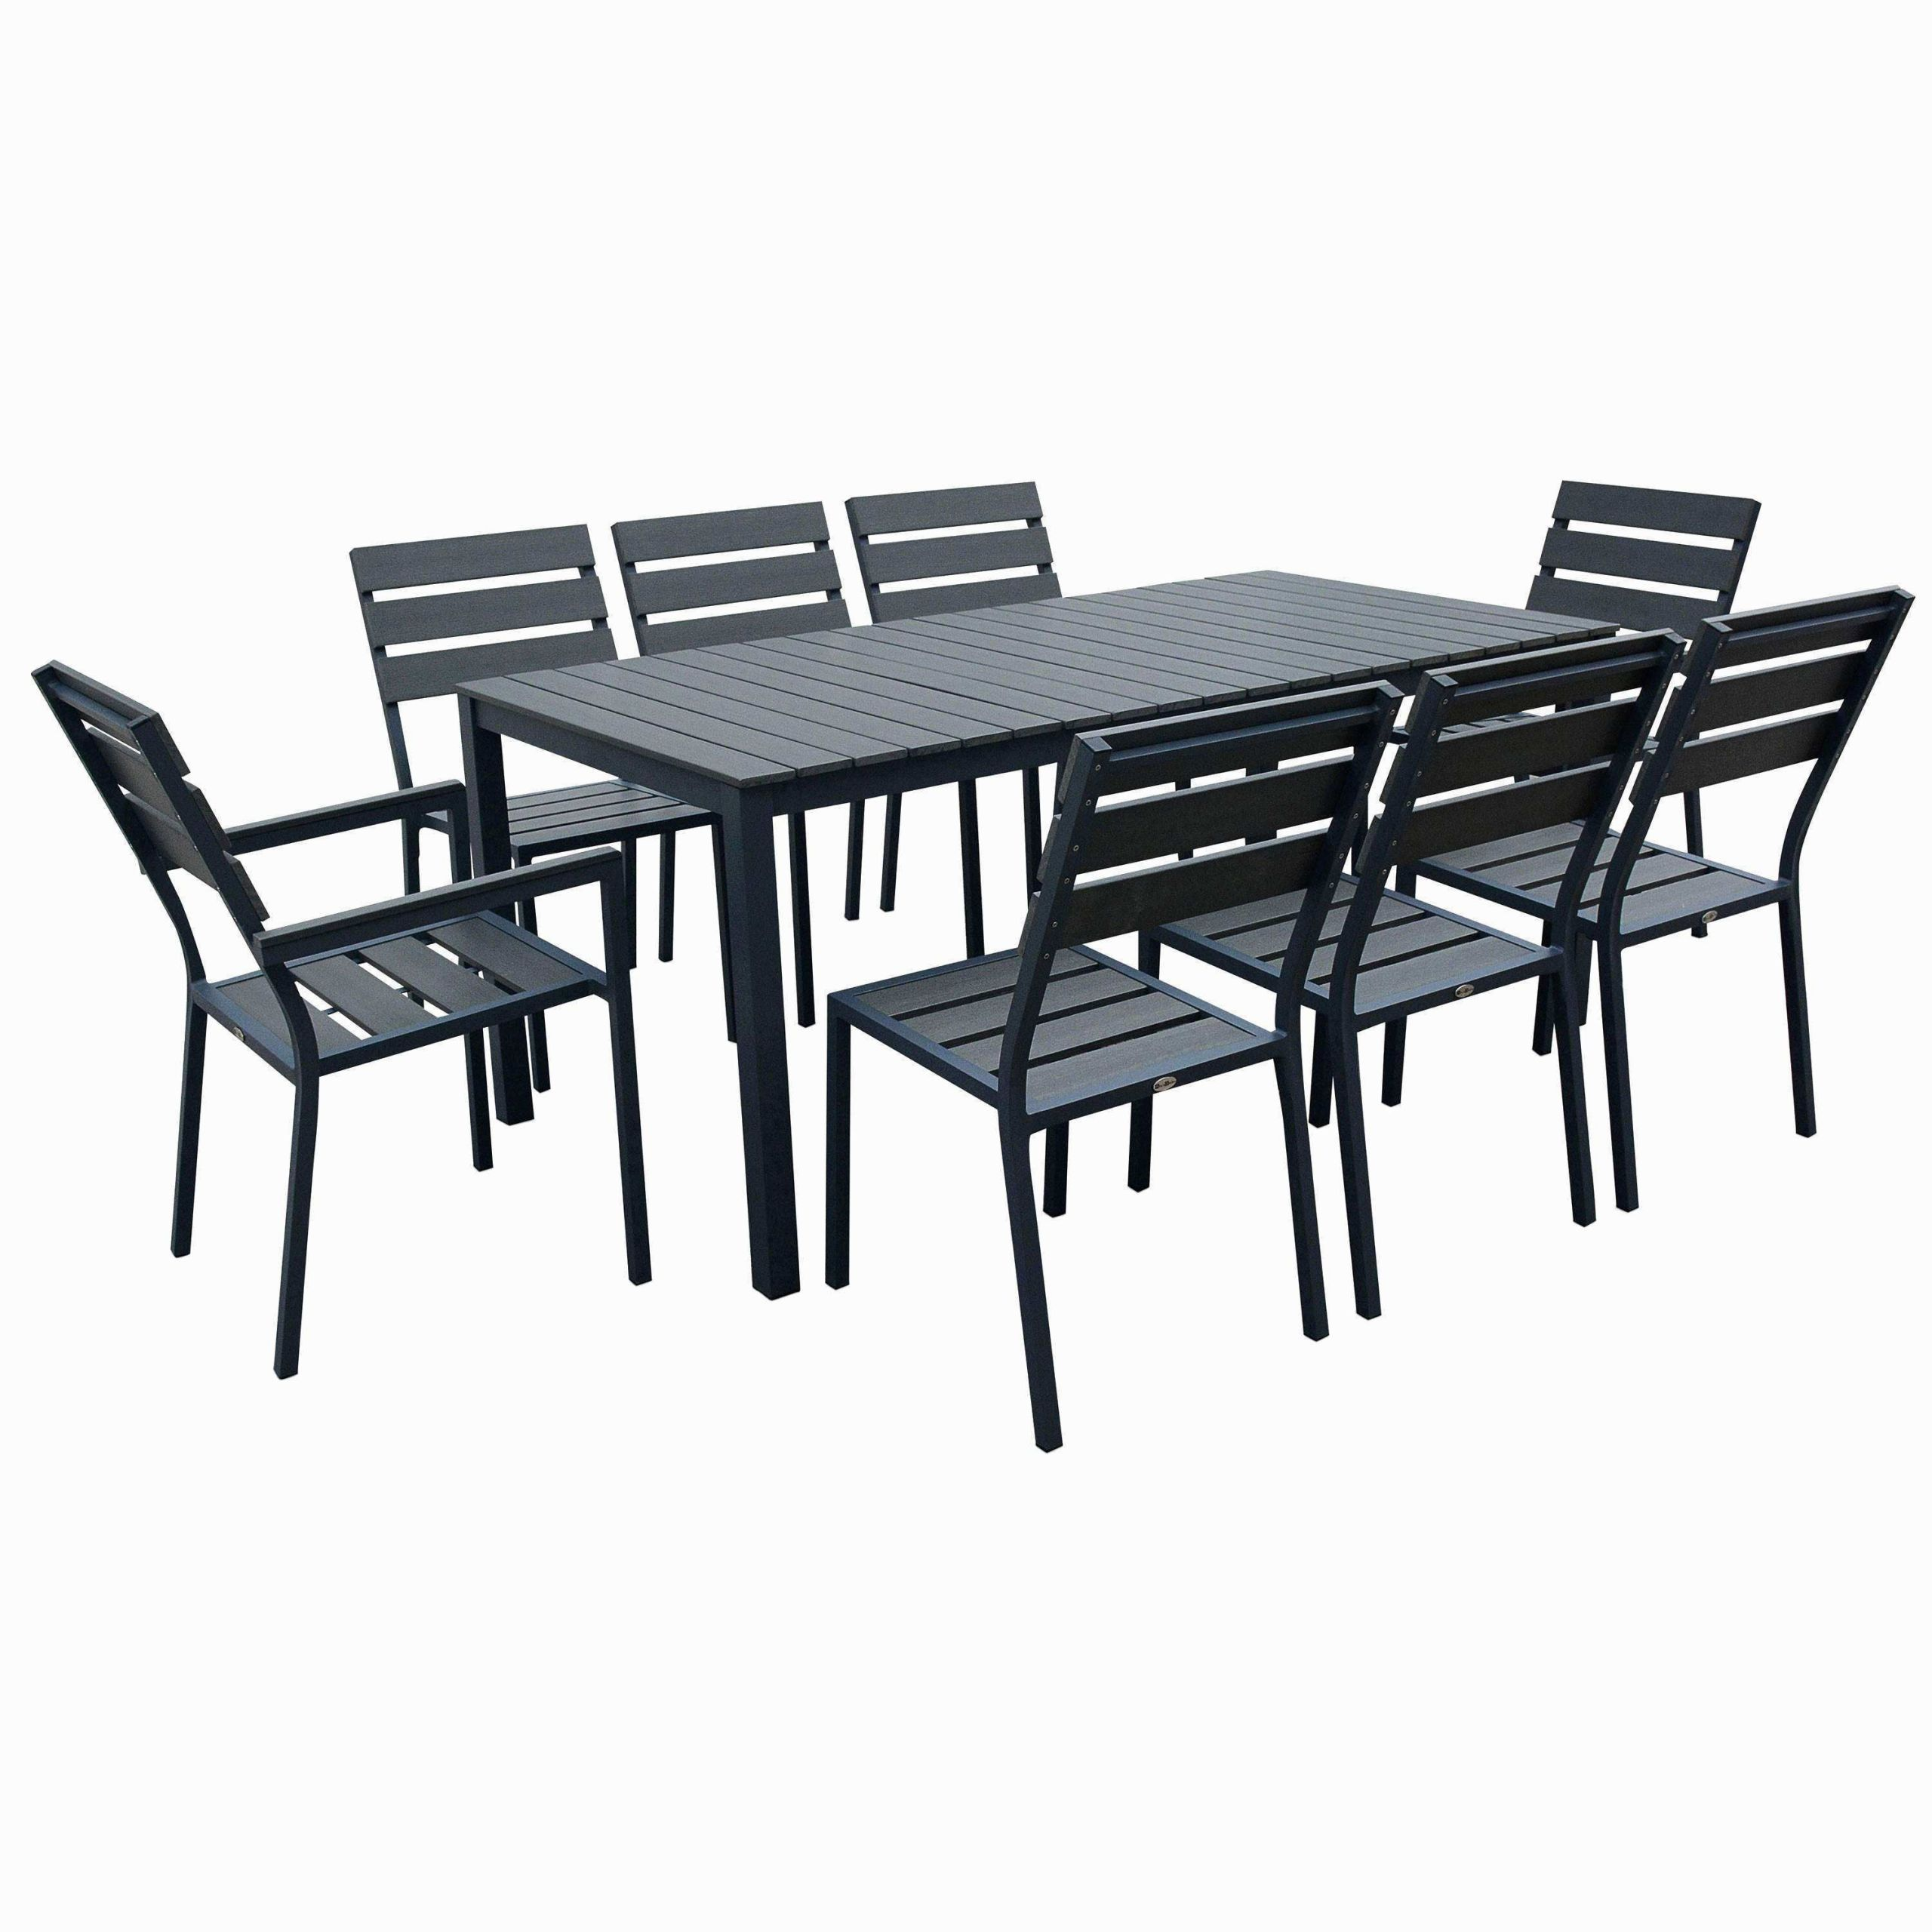 table de terrasse pas cher luxury cdiscount table de jardin of table de terrasse pas cher